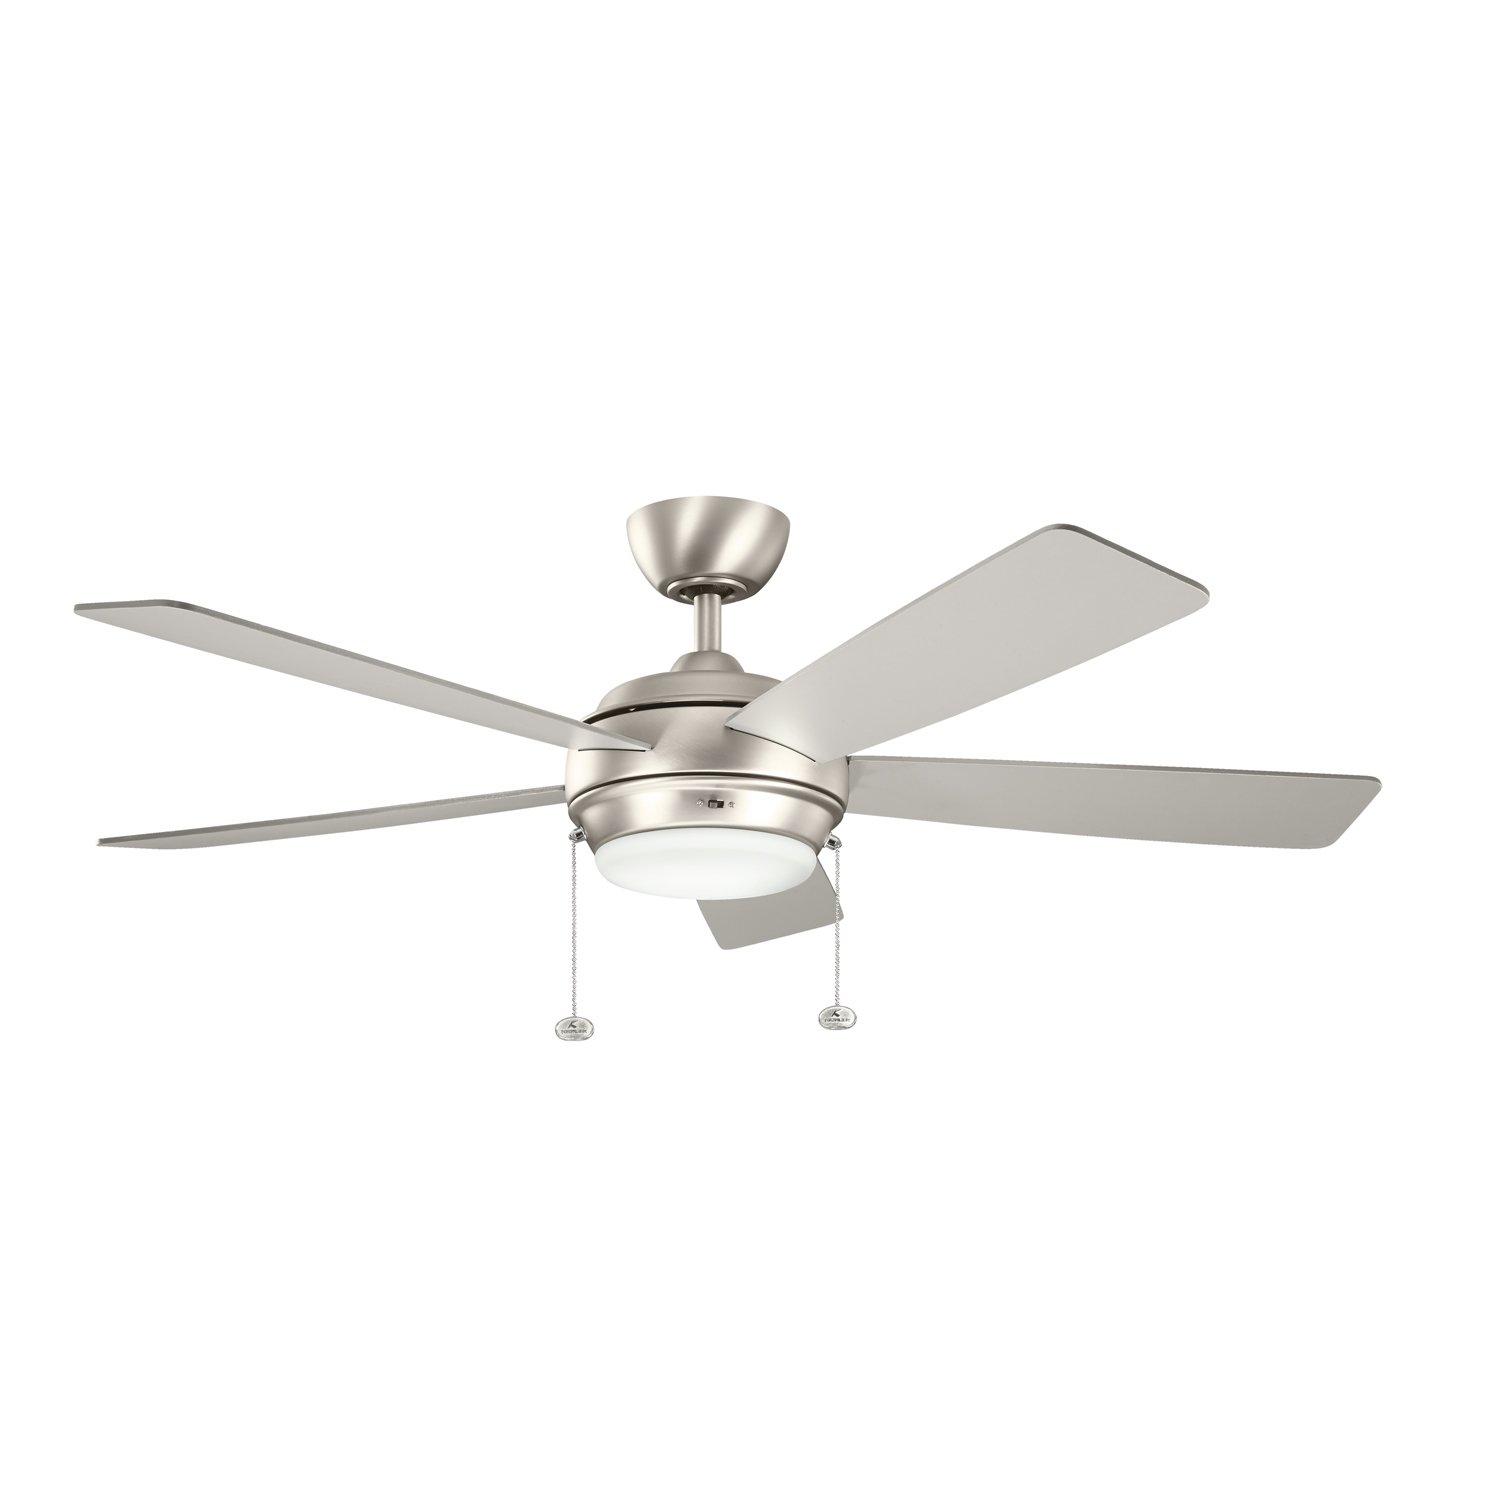 Kichler NI Starkk Ceiling Fan 52 inch Brushed Nickel 5